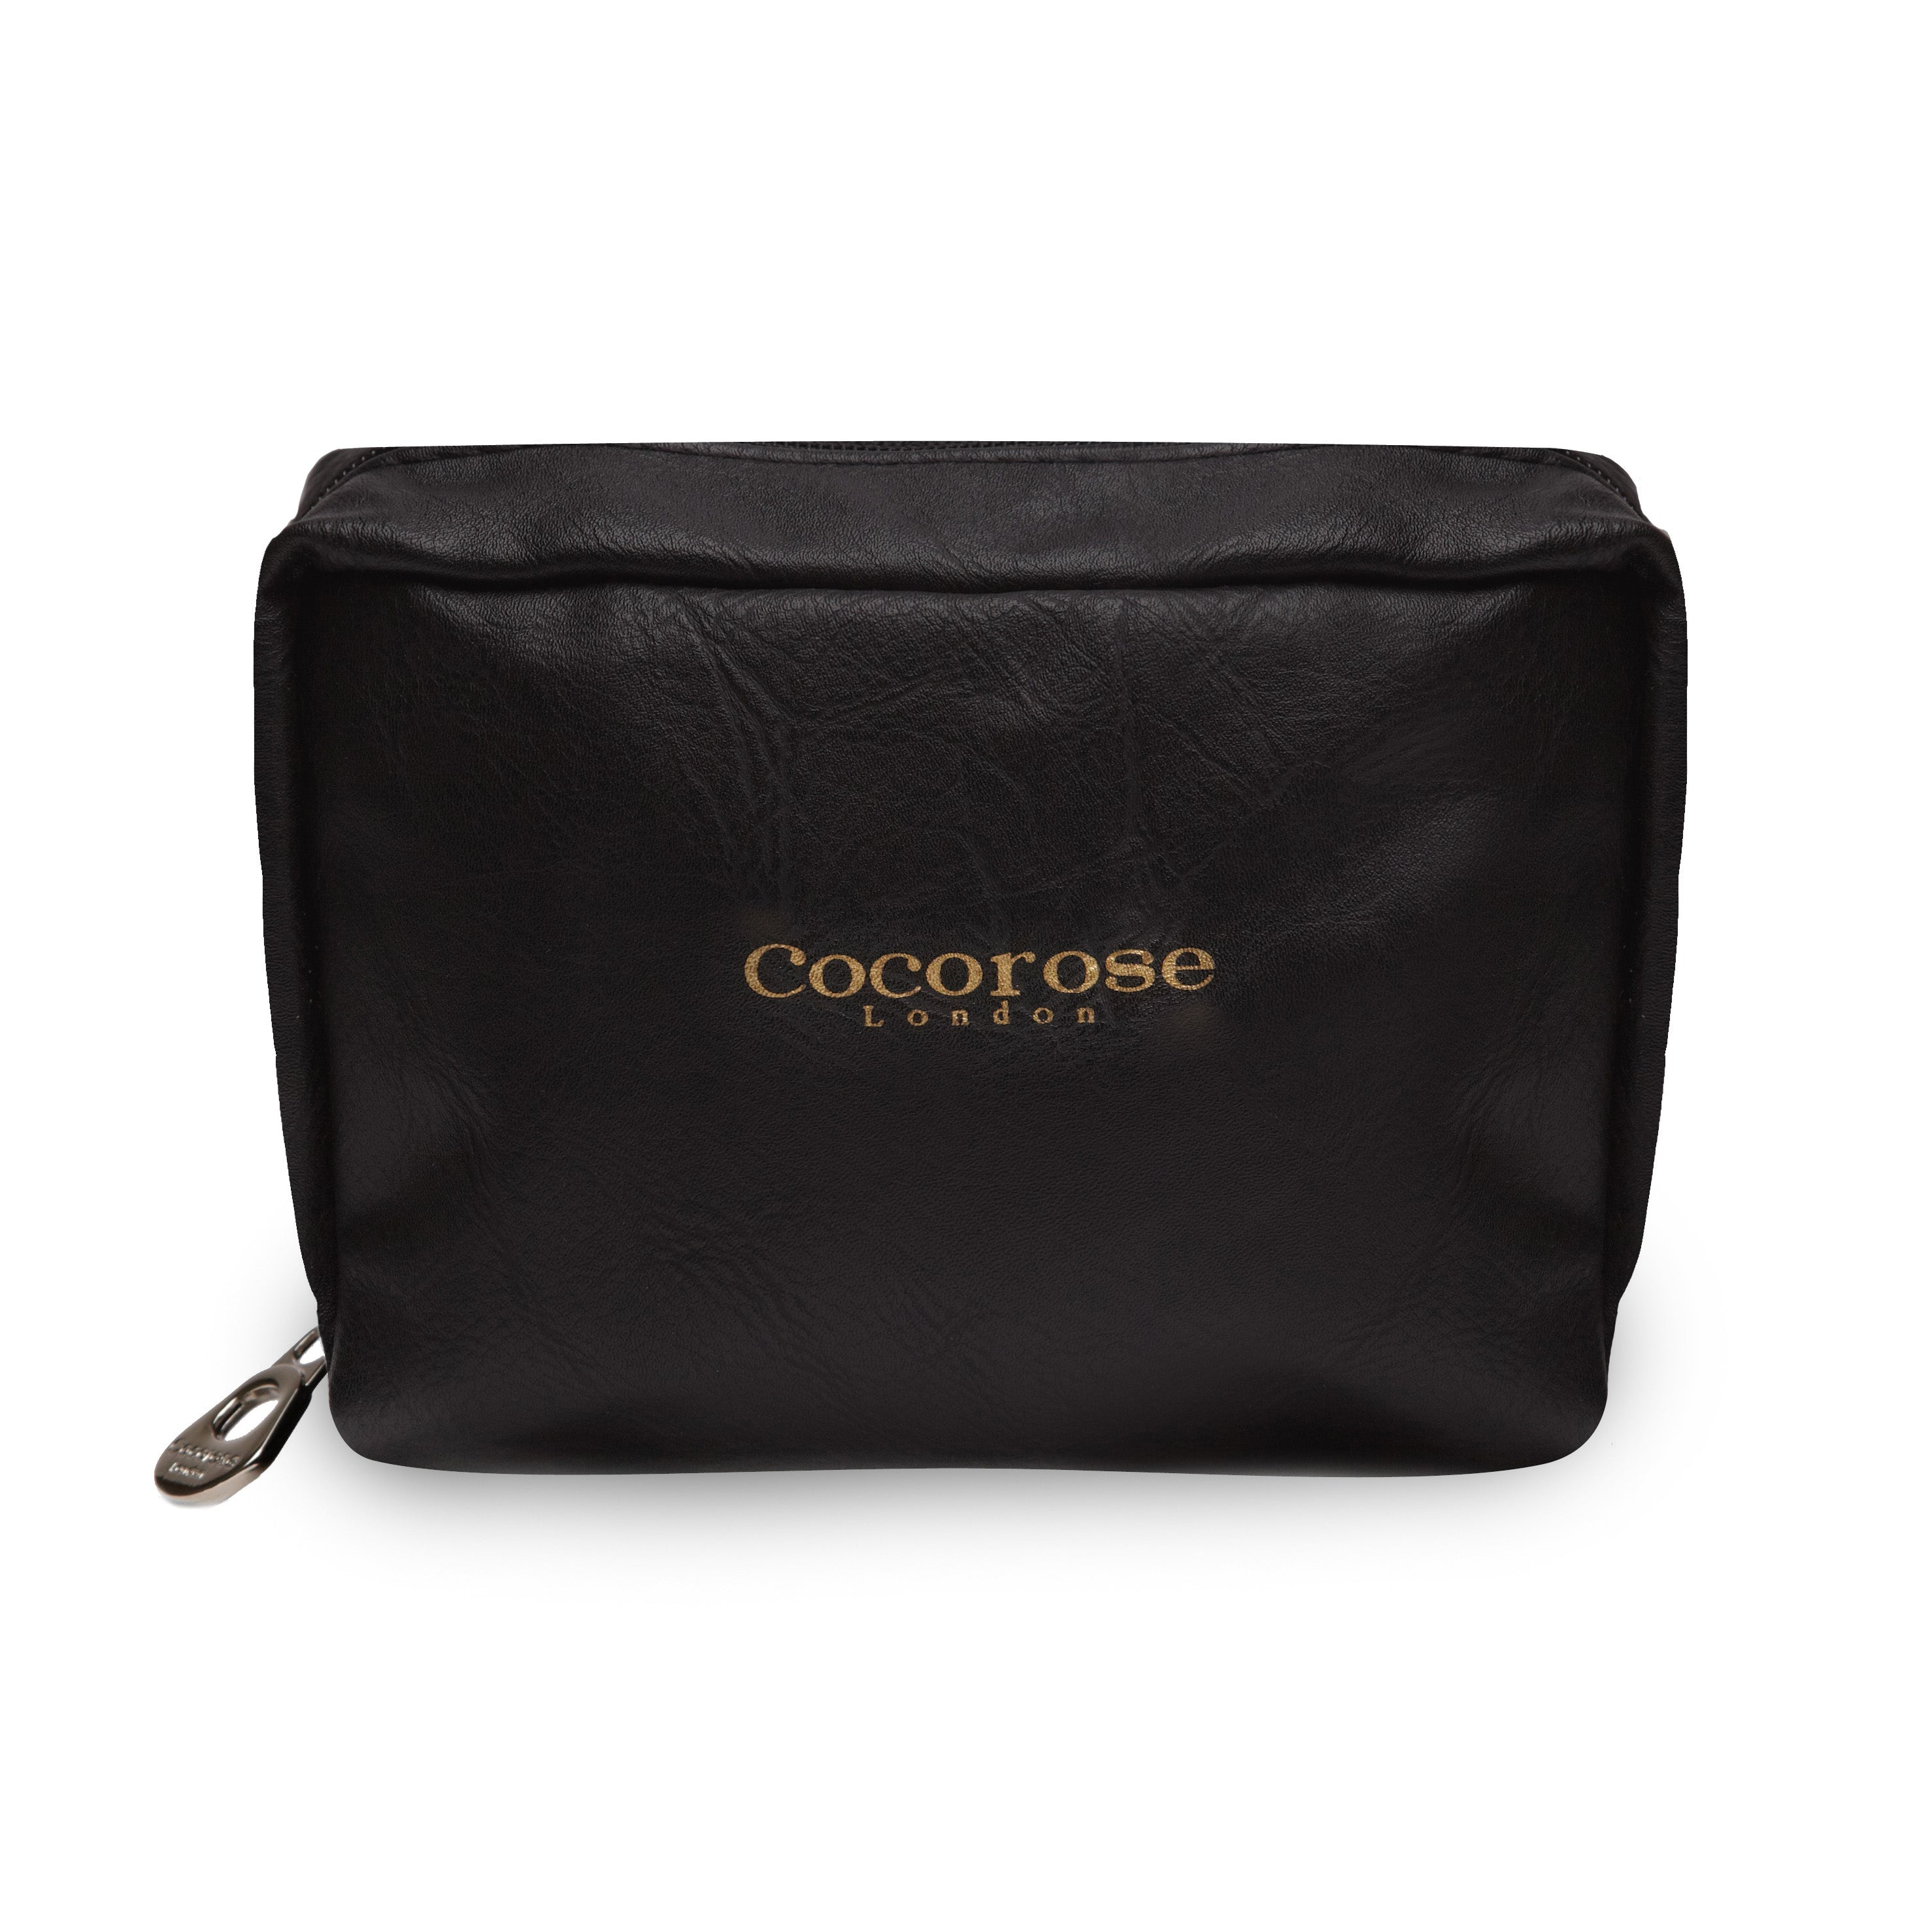 Cocorose London's Vegan Greenwich Style - Travel Purse for Black Foldable Shoes